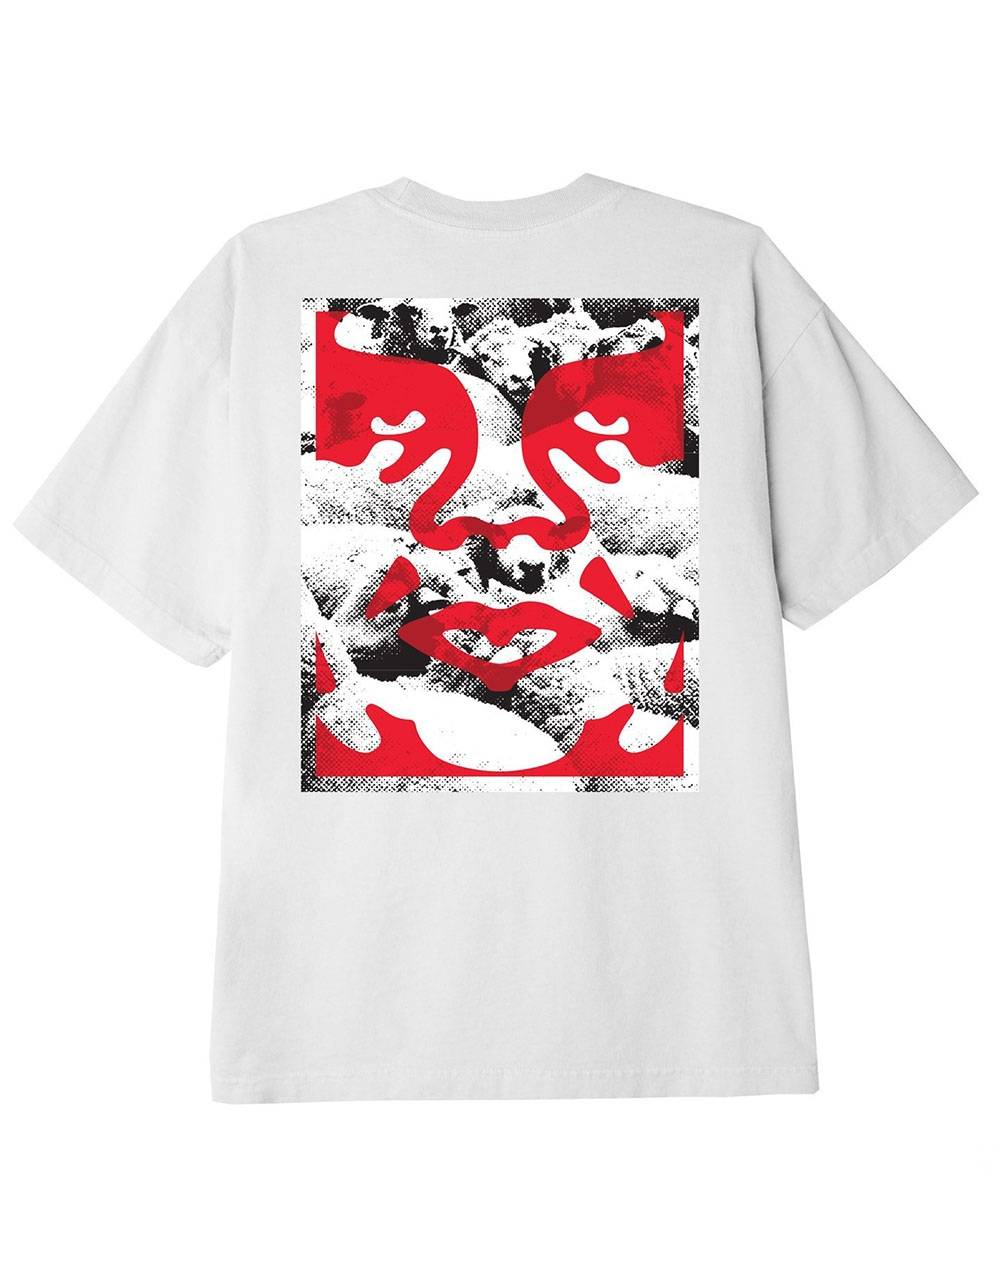 Obey seduction of the masses classic t-shirt - white obey T-shirt 45,00€